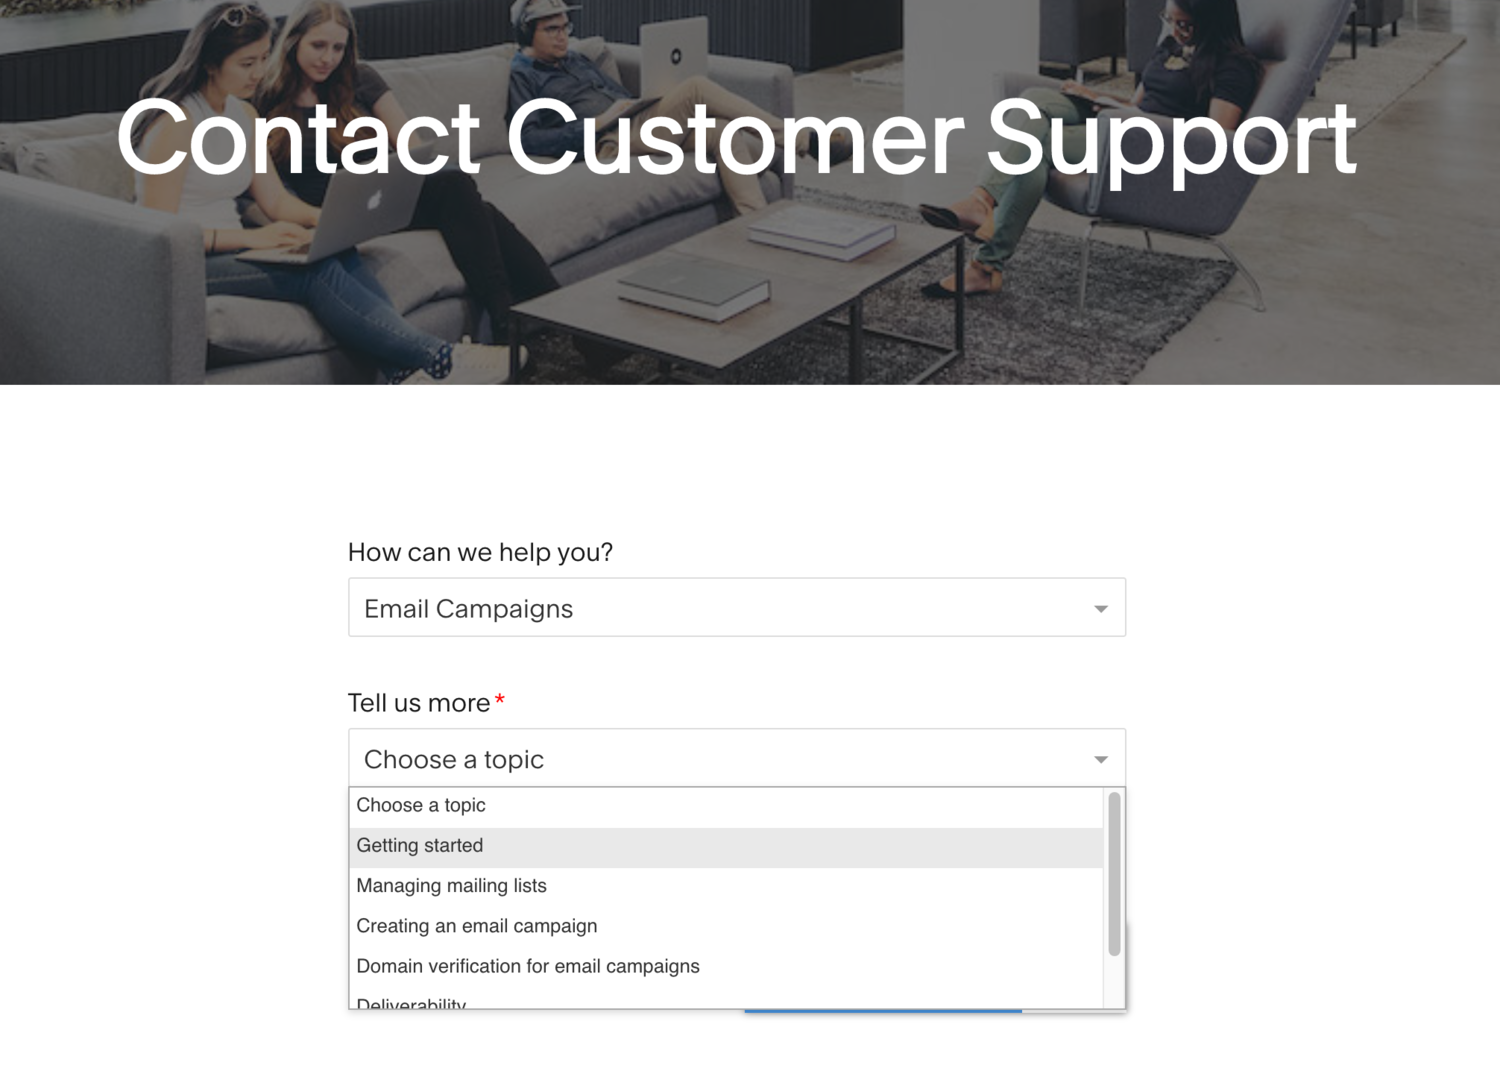 squarespace contact self-service